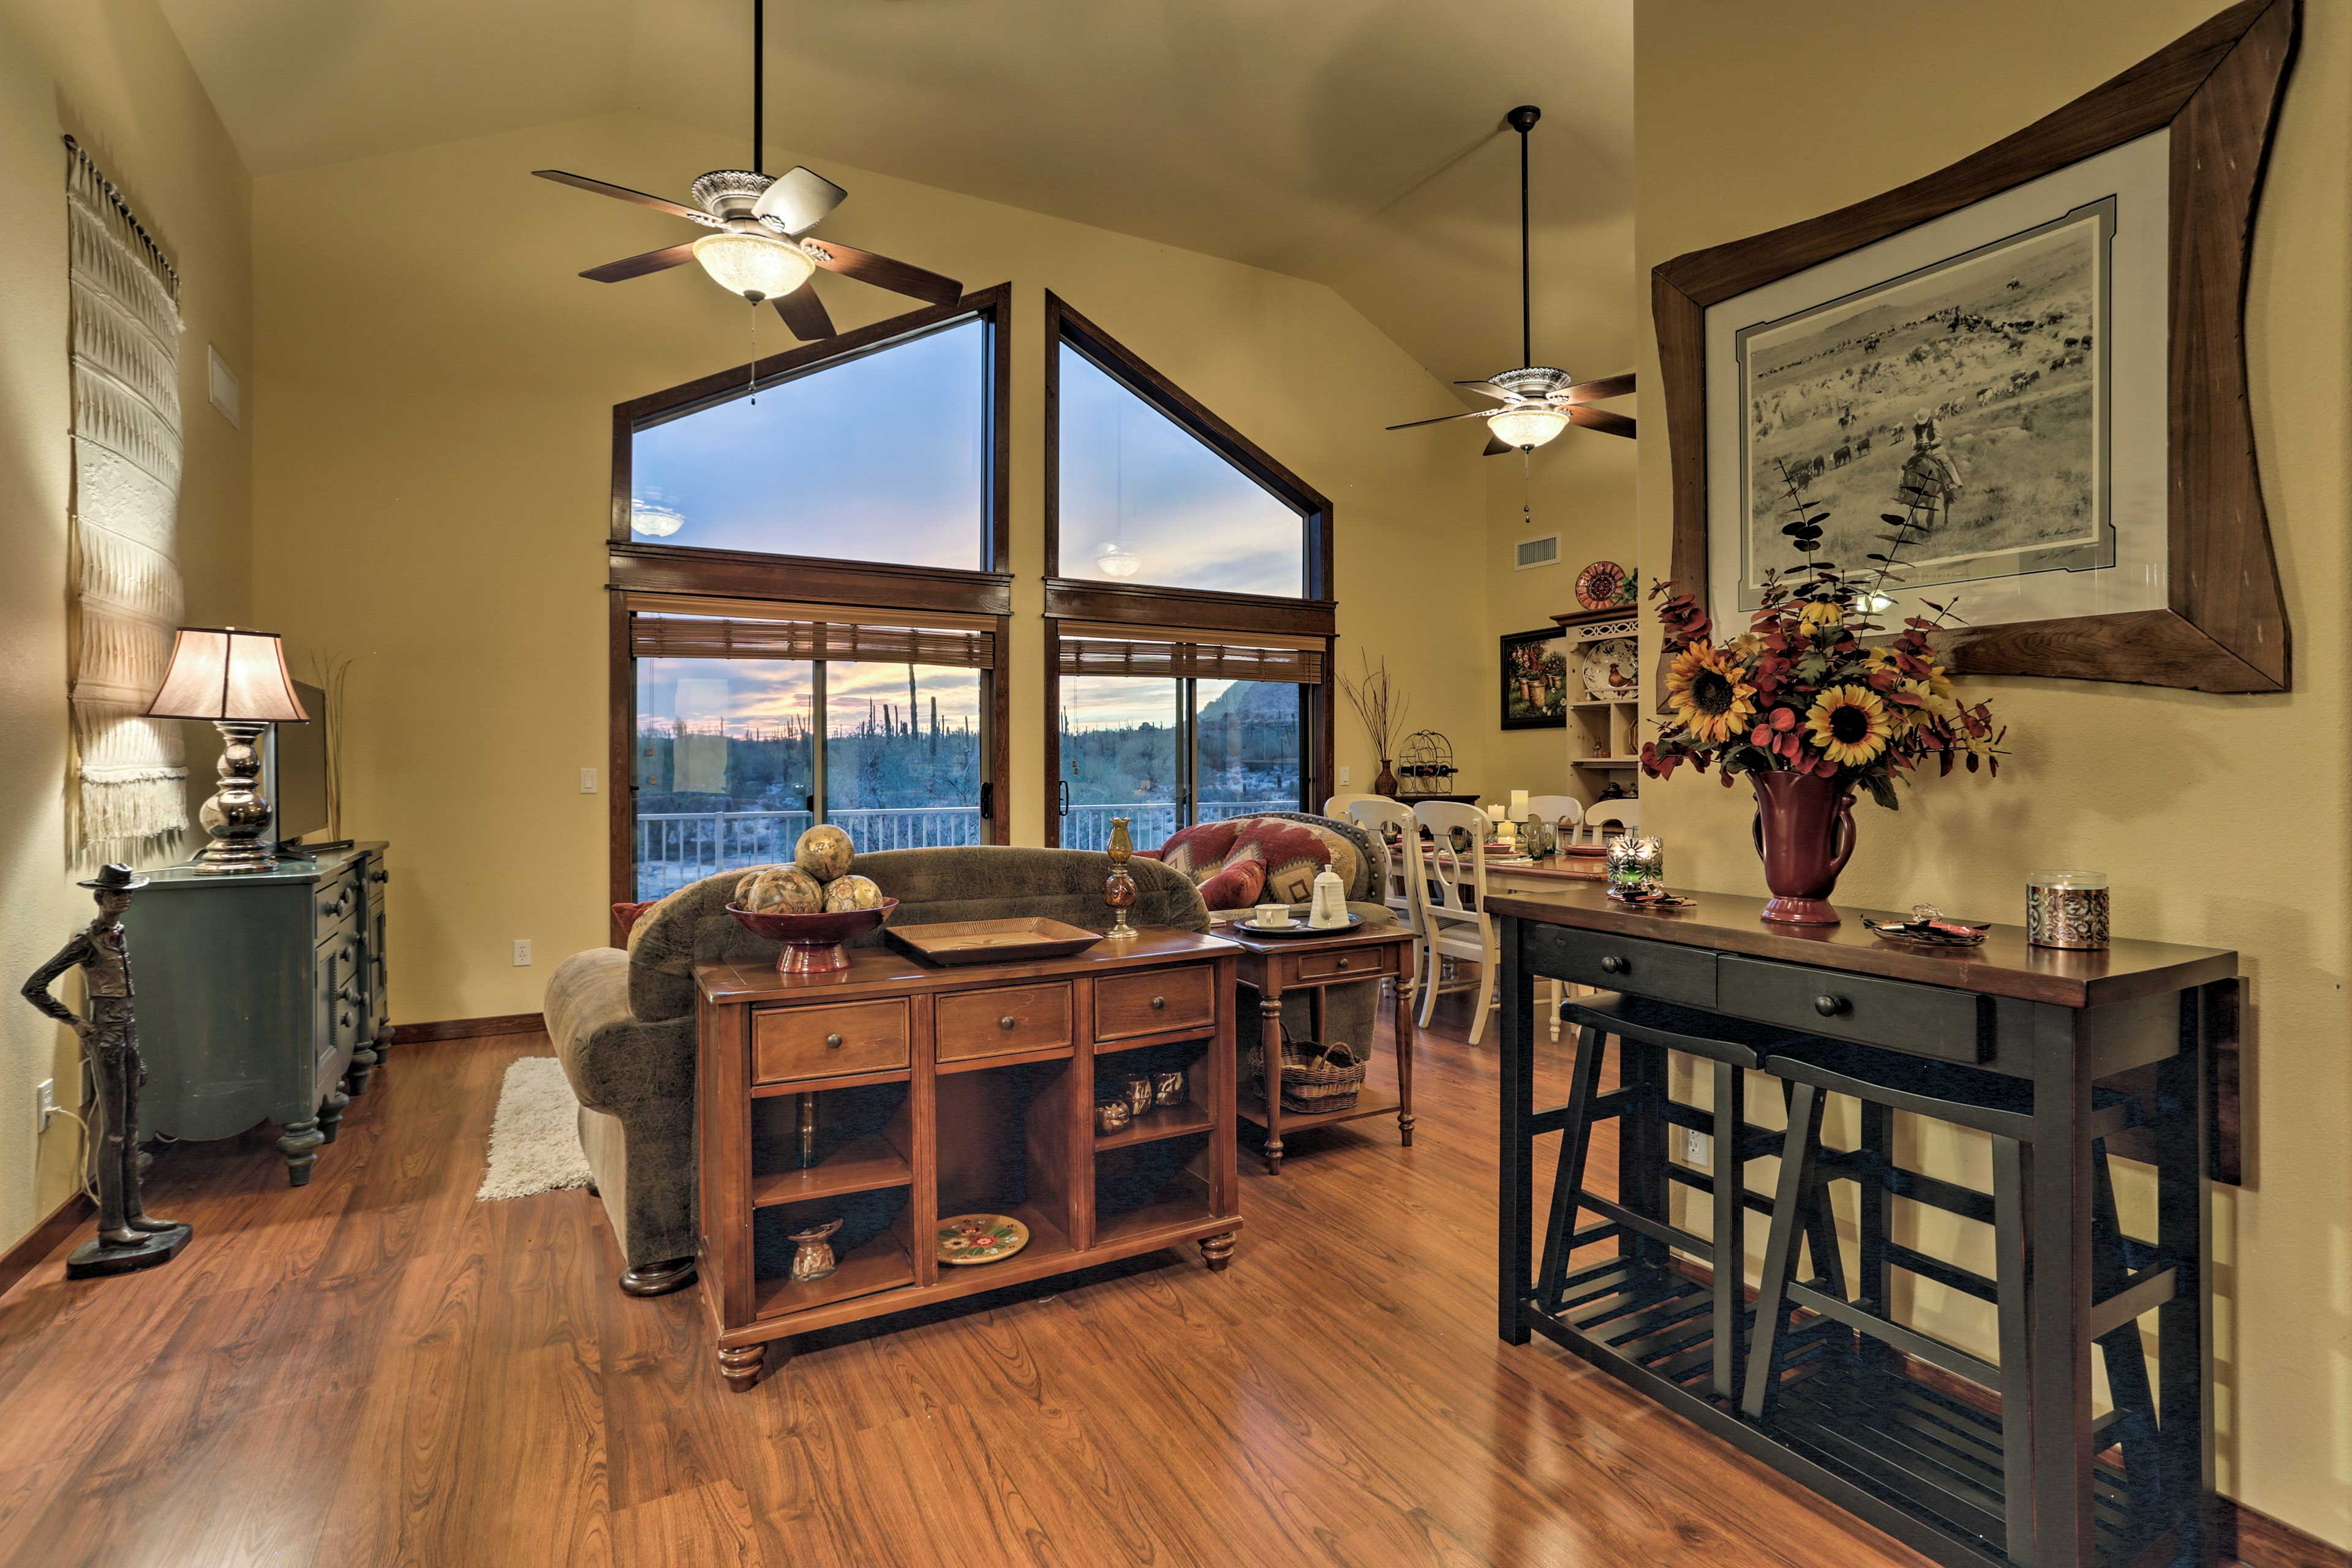 Everyone can relax comfortably in the 1,250 square feet of living space.